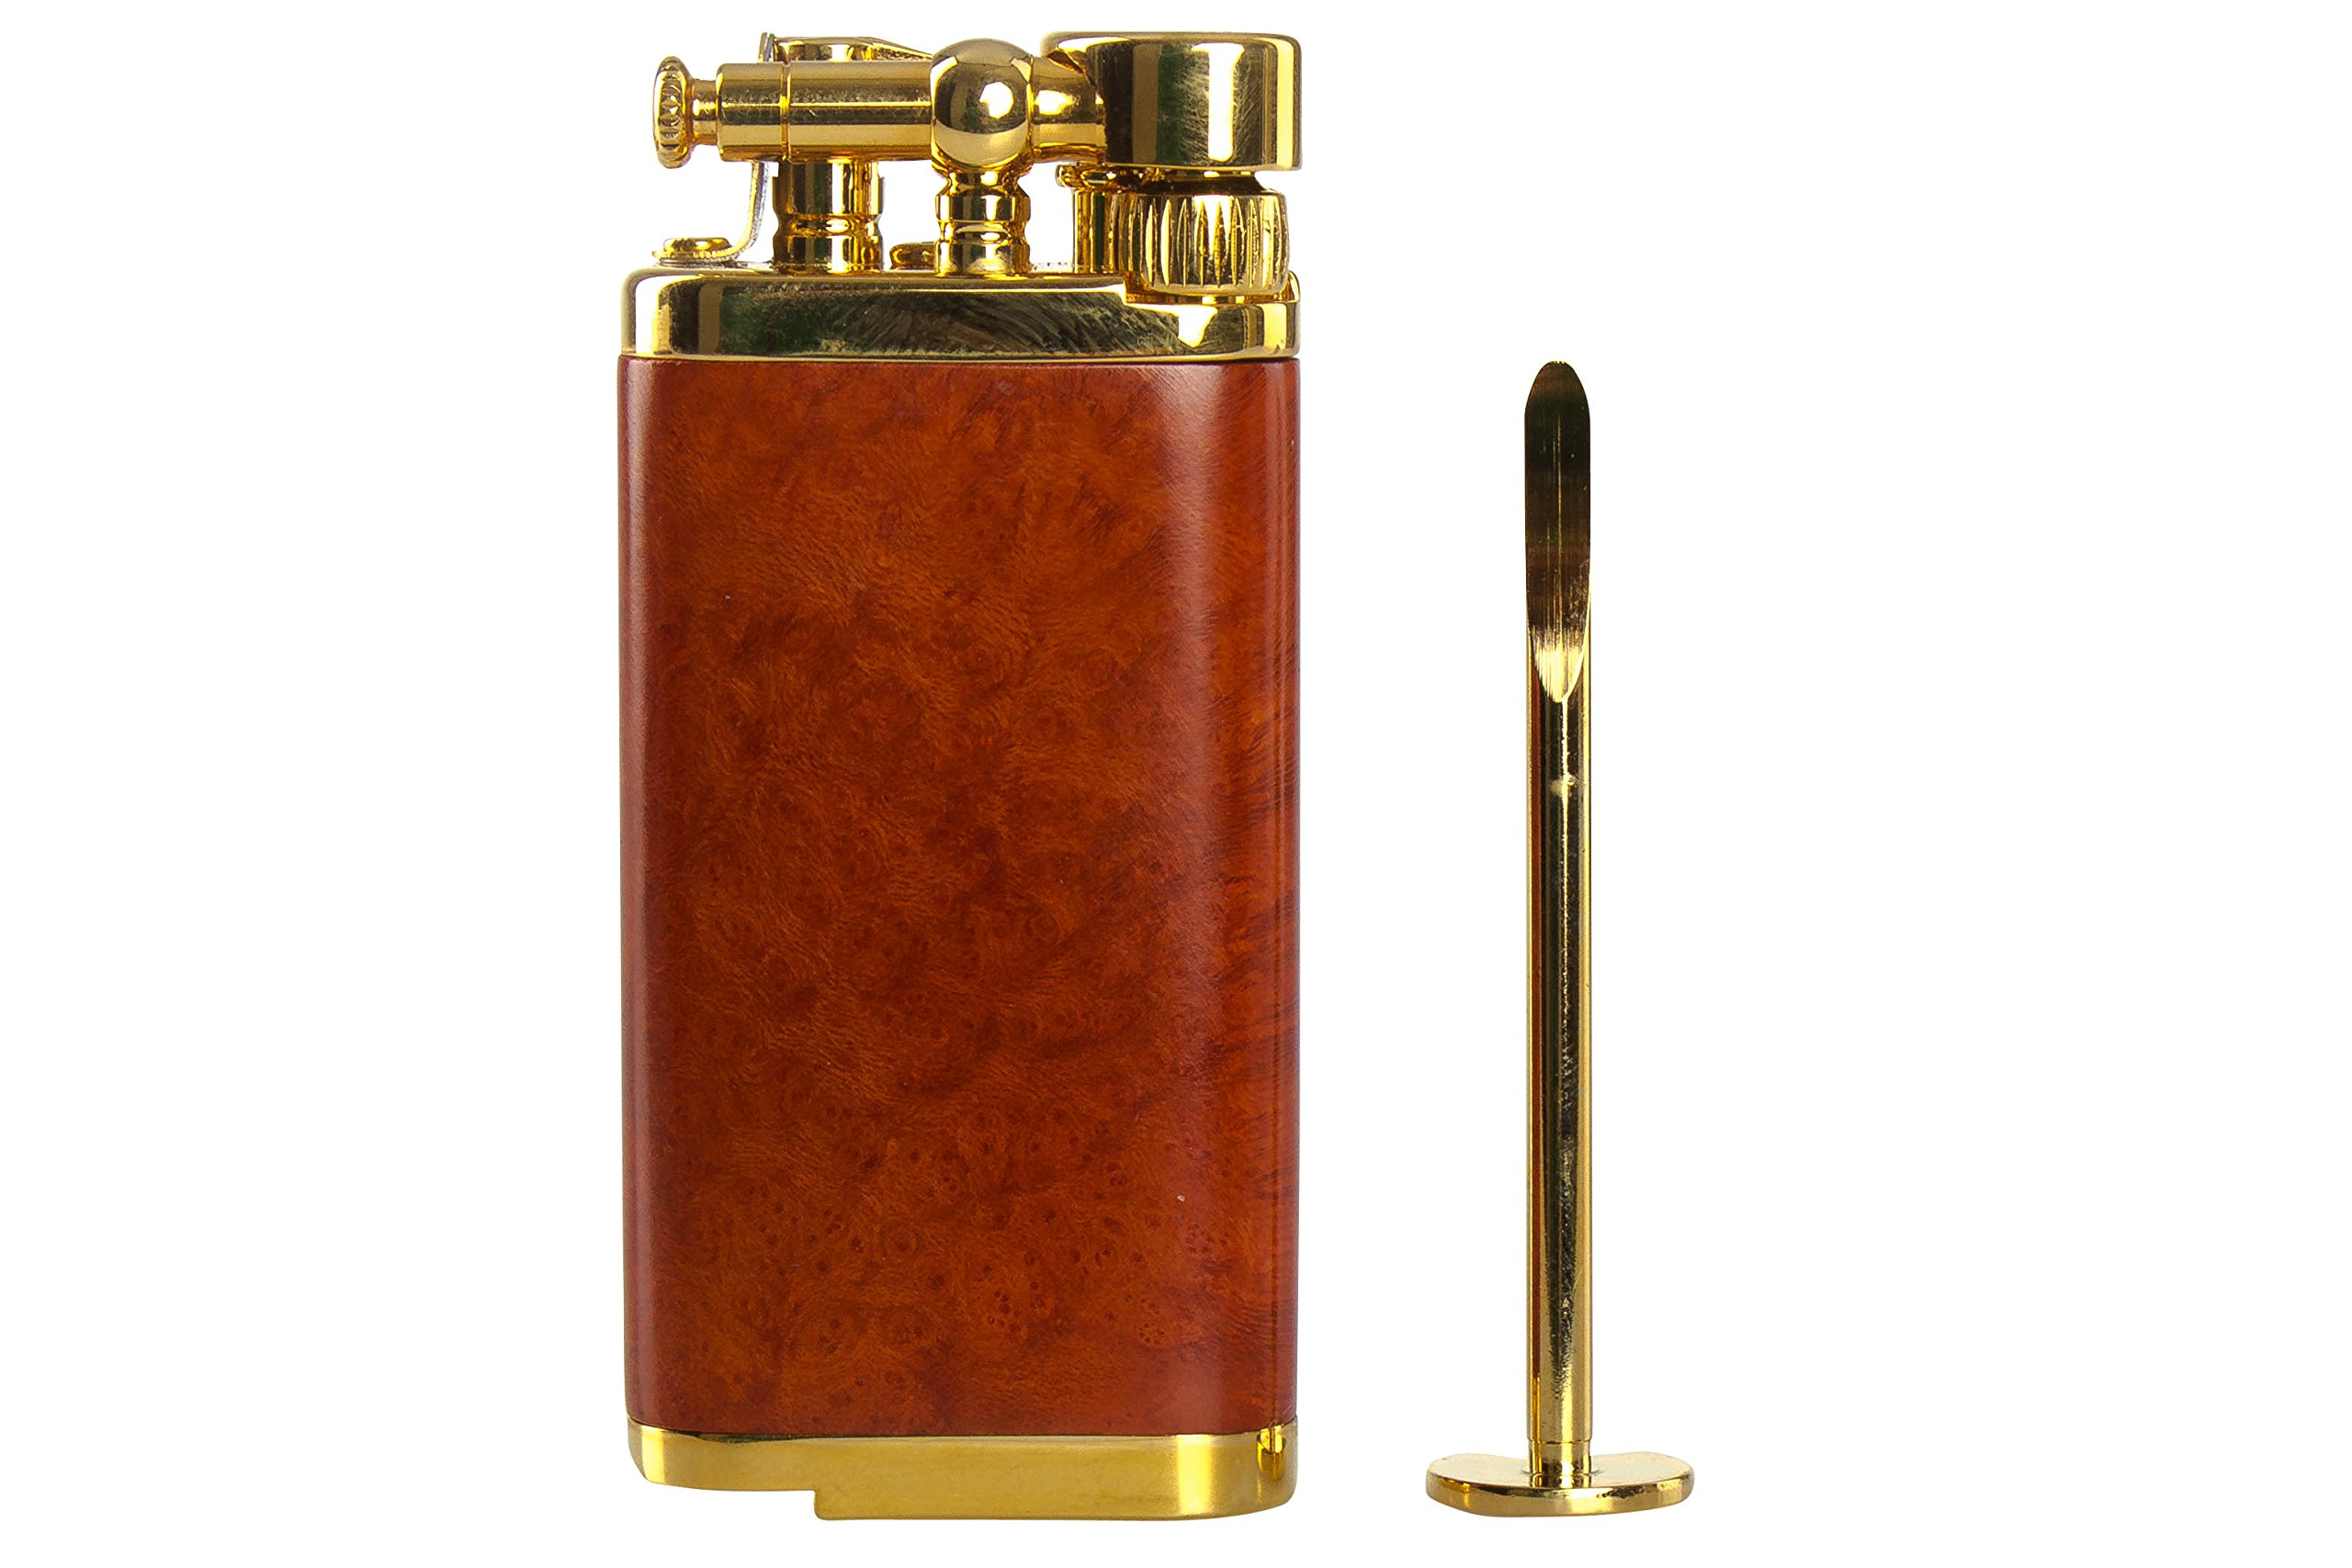 IM Corona Old Boy Gold And Natural Smooth Briar Pipe Lighter by IM Corona (Image #4)